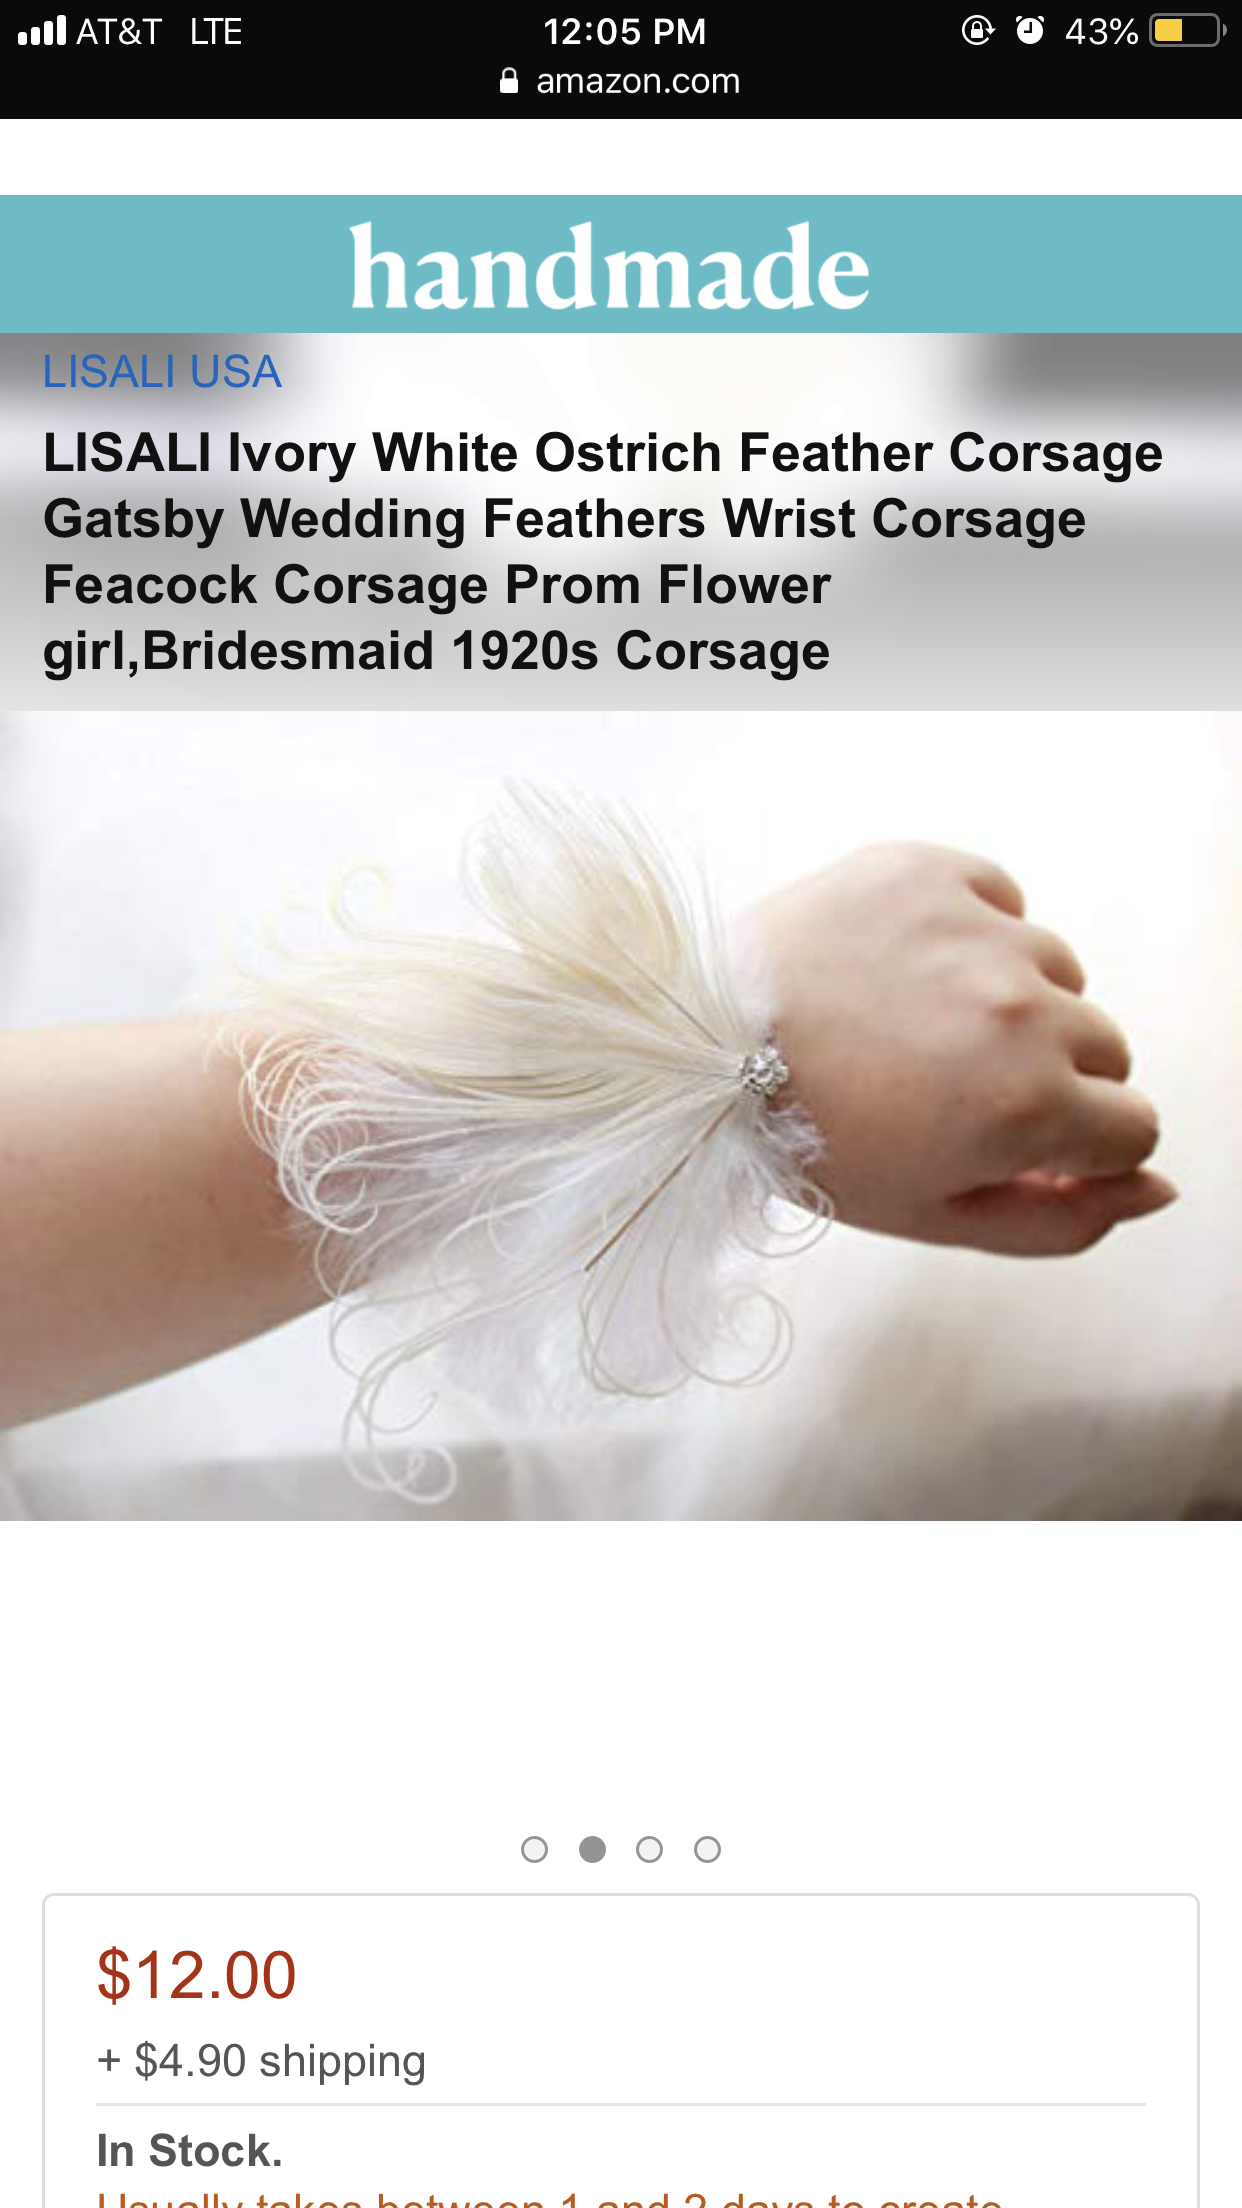 Great Gatsby Wedding Wrist Corsage Mother Bridesmaid 1920s Corsage LISALI Black Feather Corsage Crystal Vintage Corsage